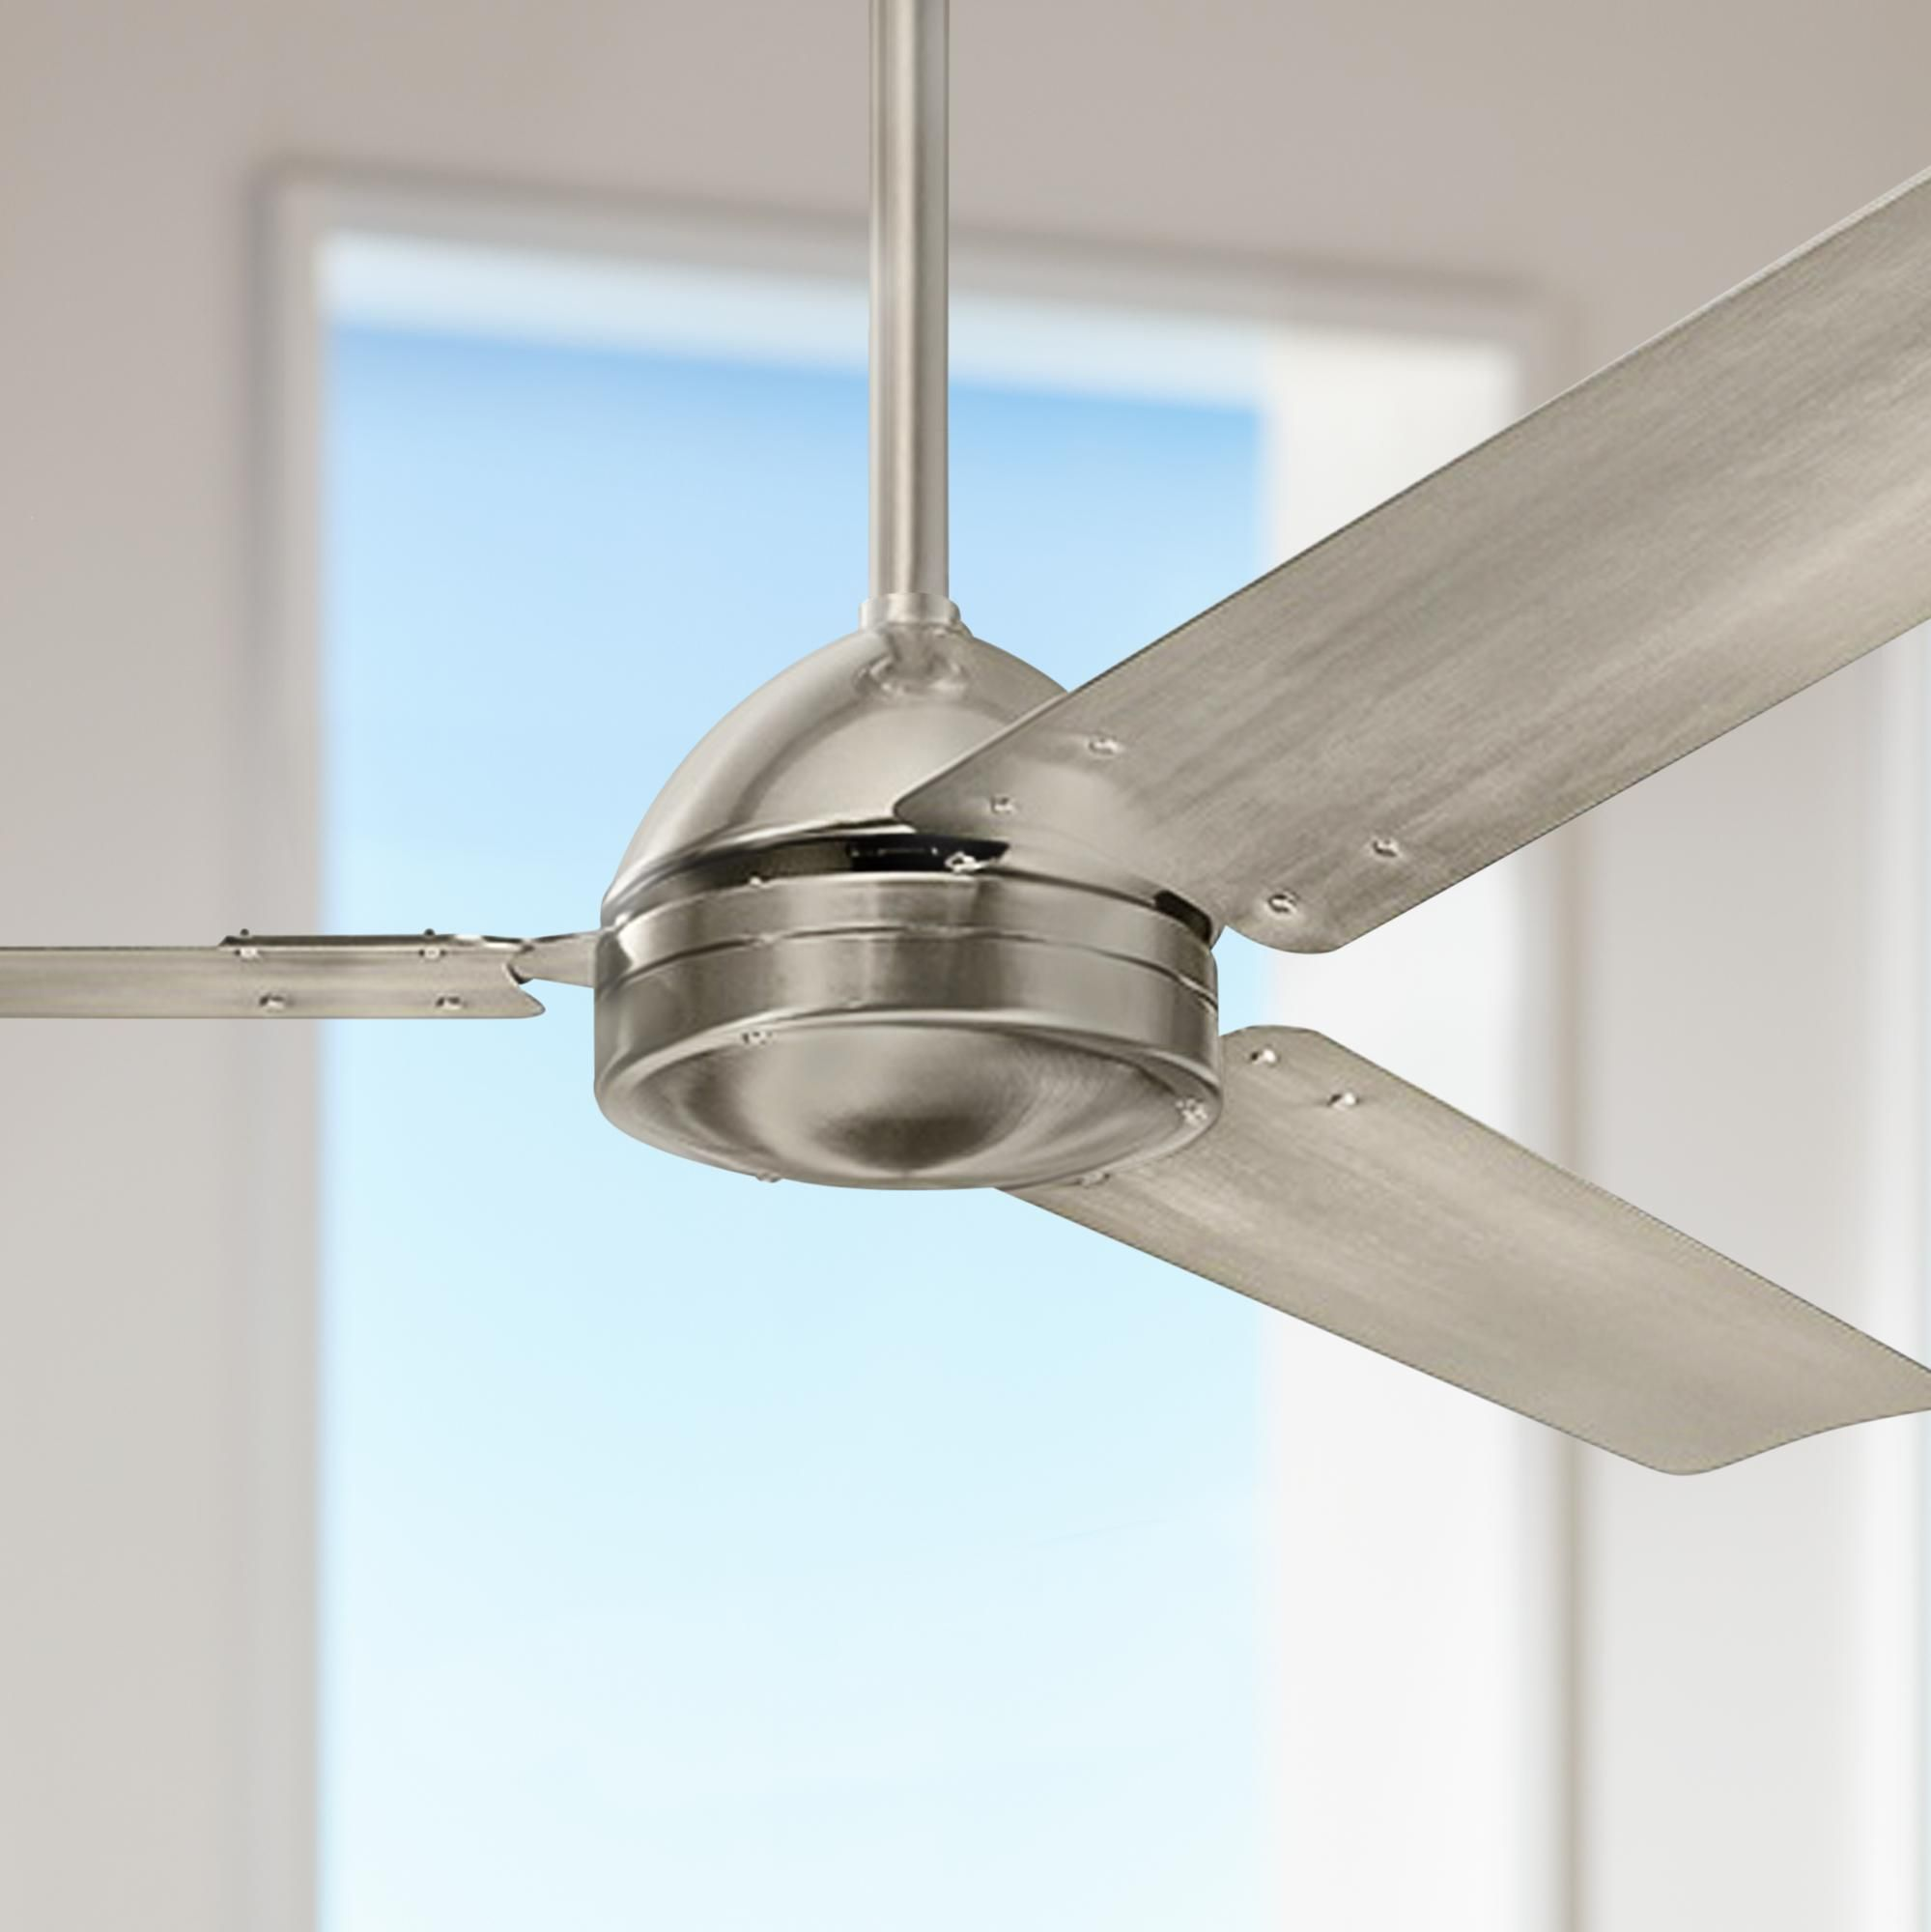 Ceiling Fans 56 Kichler Todo Brushed Stainless Steel Ceiling Fan In 2020 Stainless Steel Ceiling Fan Ceiling Fan Brushed Stainless Steel